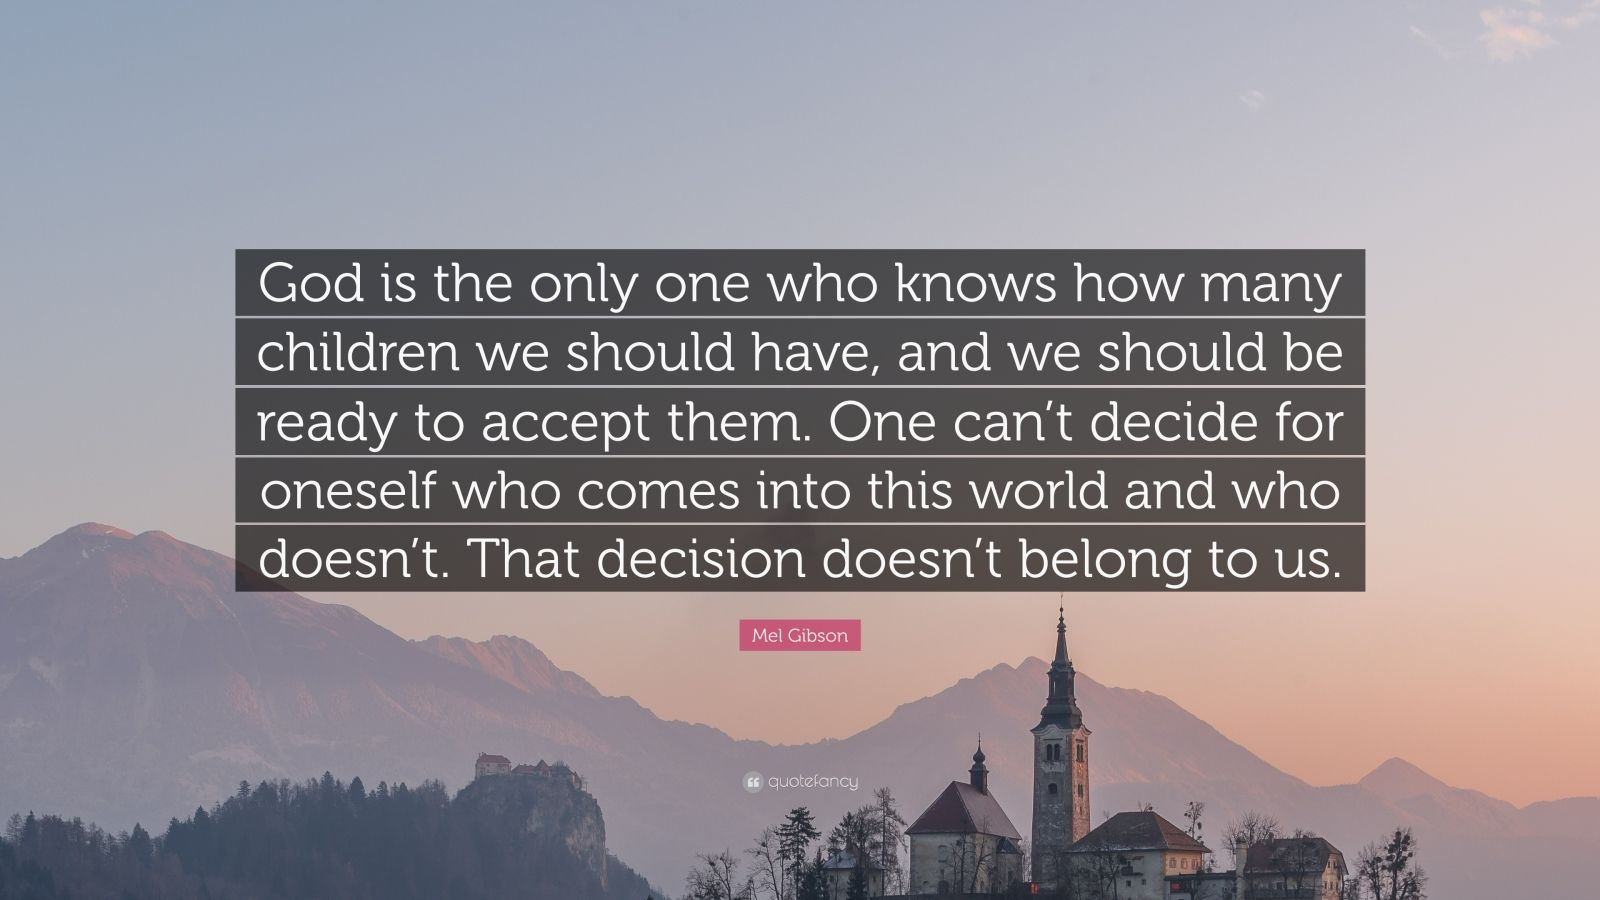 """Mel Gibson Quote: """"God is the only one who knows how many children we should have, and we should be ready to accept them. One can't decide for oneself who comes into this world and who doesn't. That decision doesn't belong to us."""""""